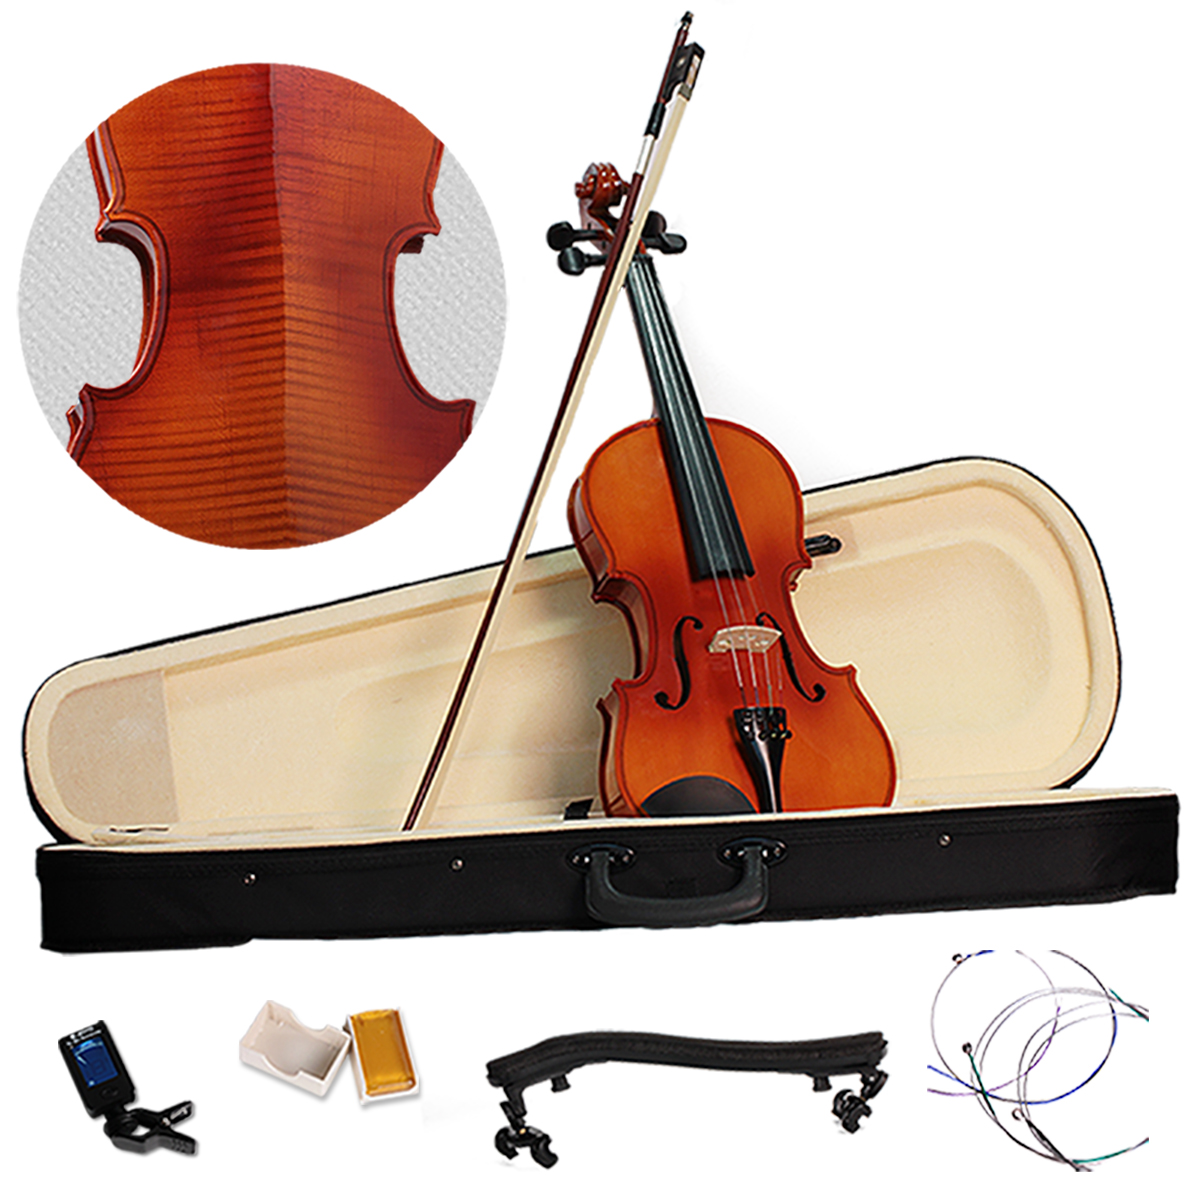 Vioin 4/4 Full Size Acoustic Fiddle Musical Instruments with Case Bow Solid Maple Wood